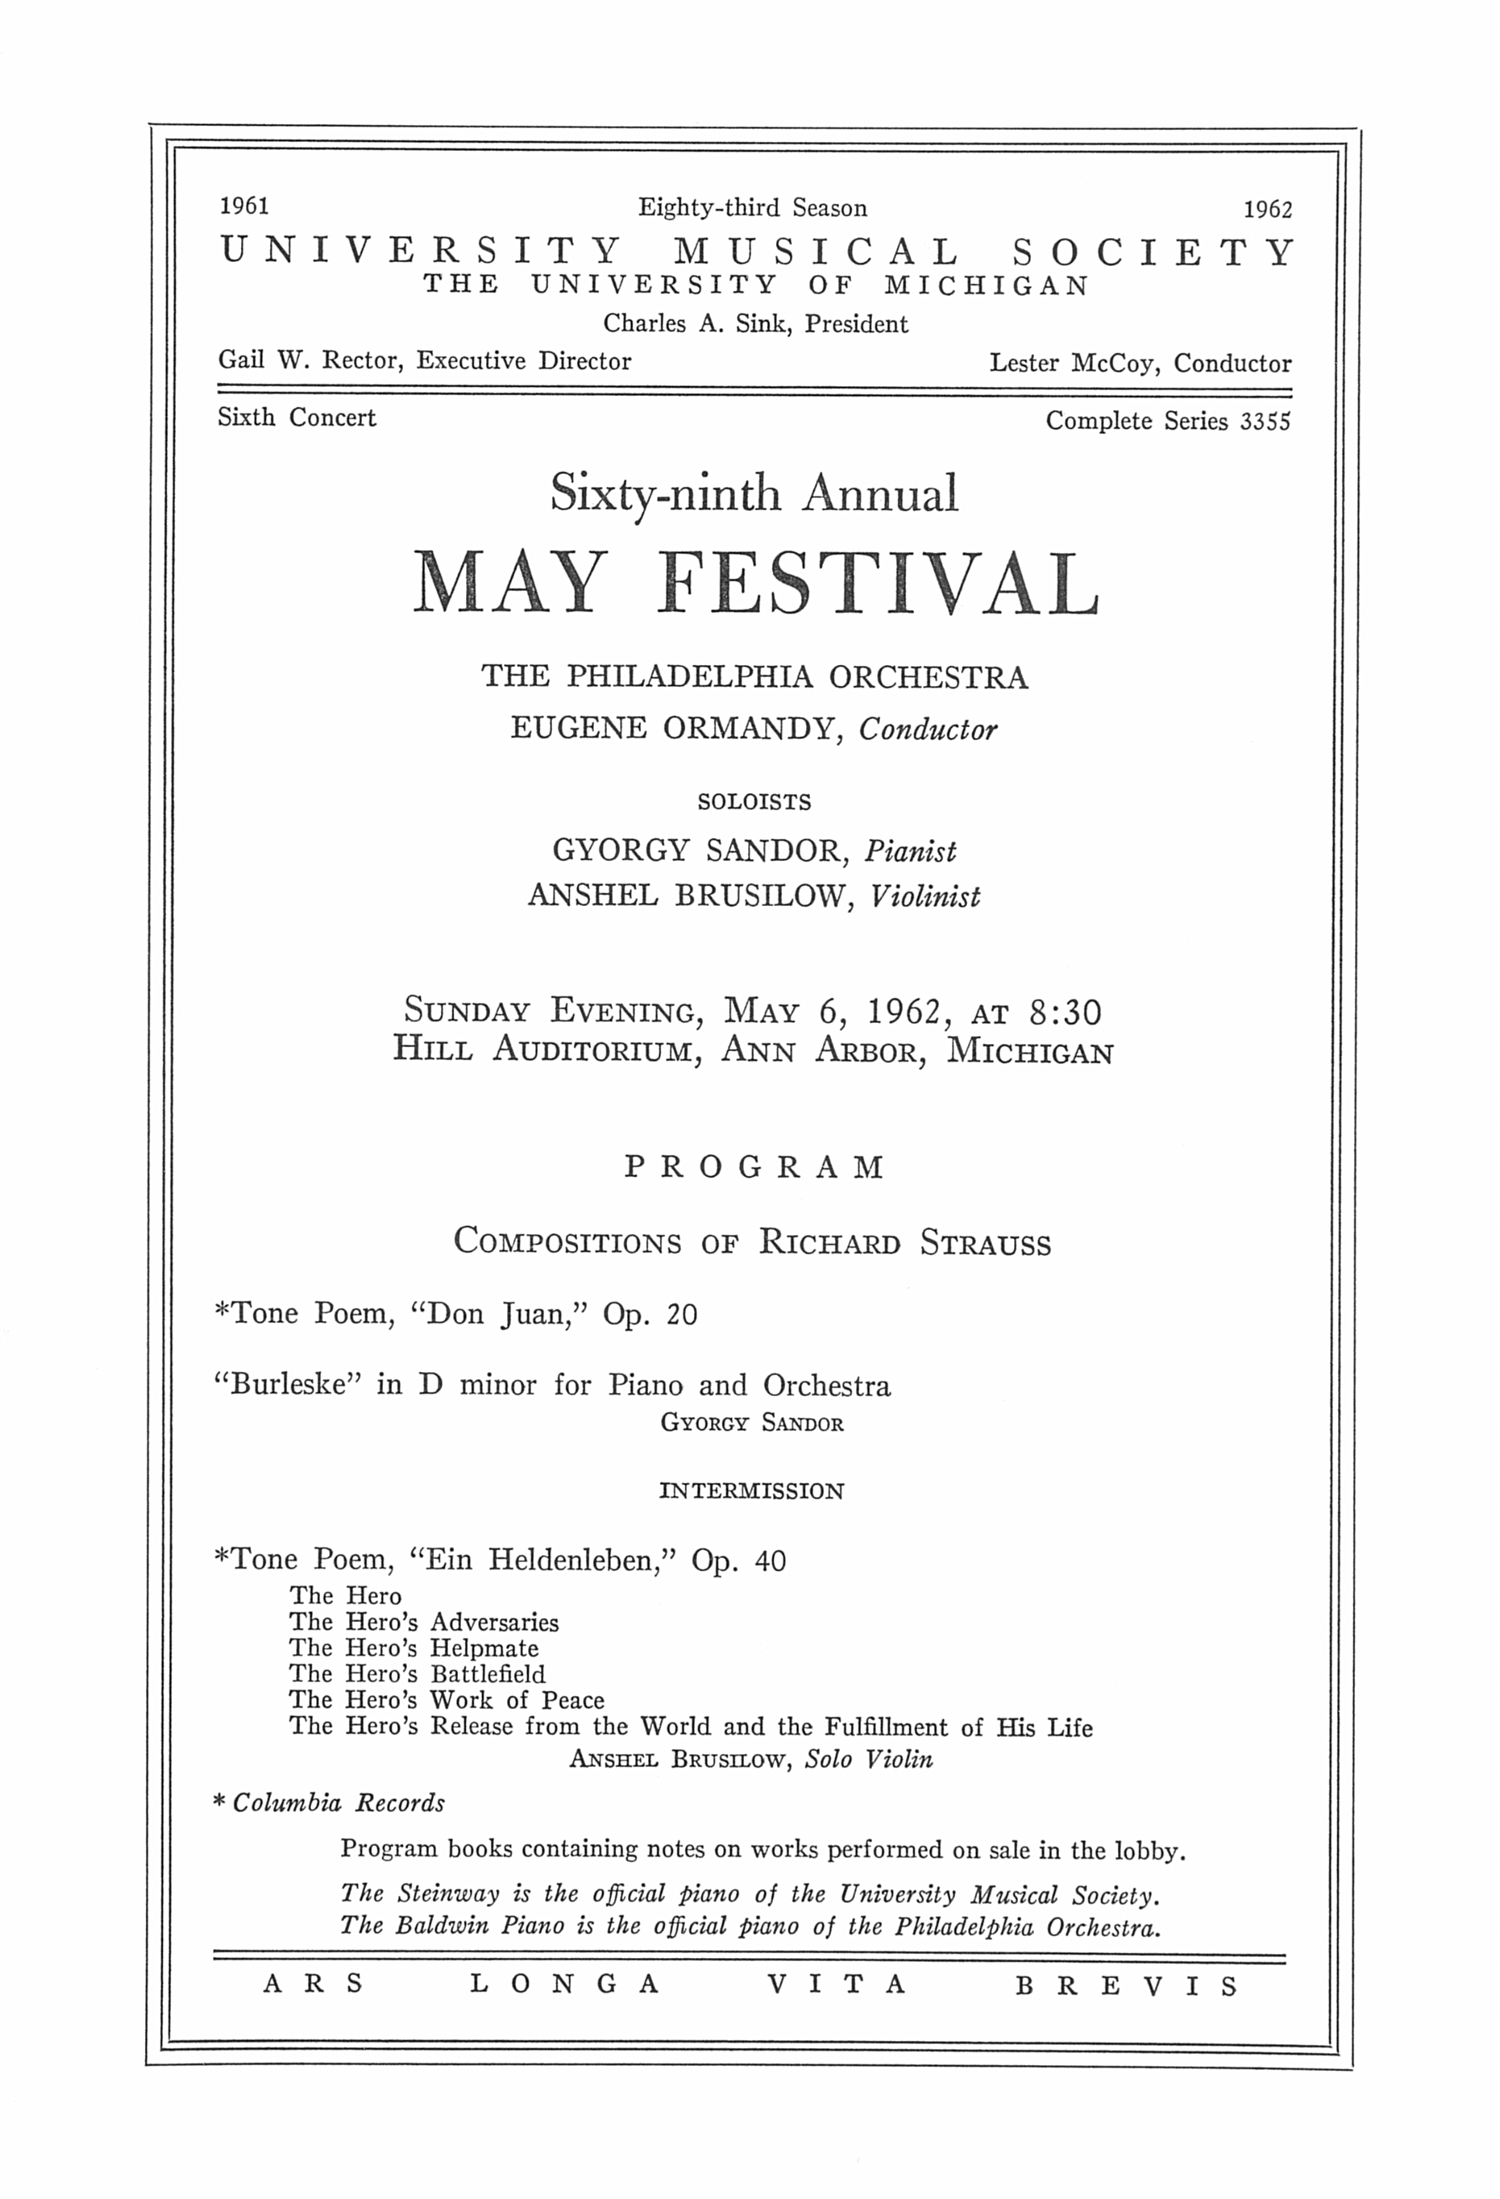 UMS Concert Program, May 6, 1962: Sixty-ninth Annual May Festival -- The Philadelphia Orchestra image